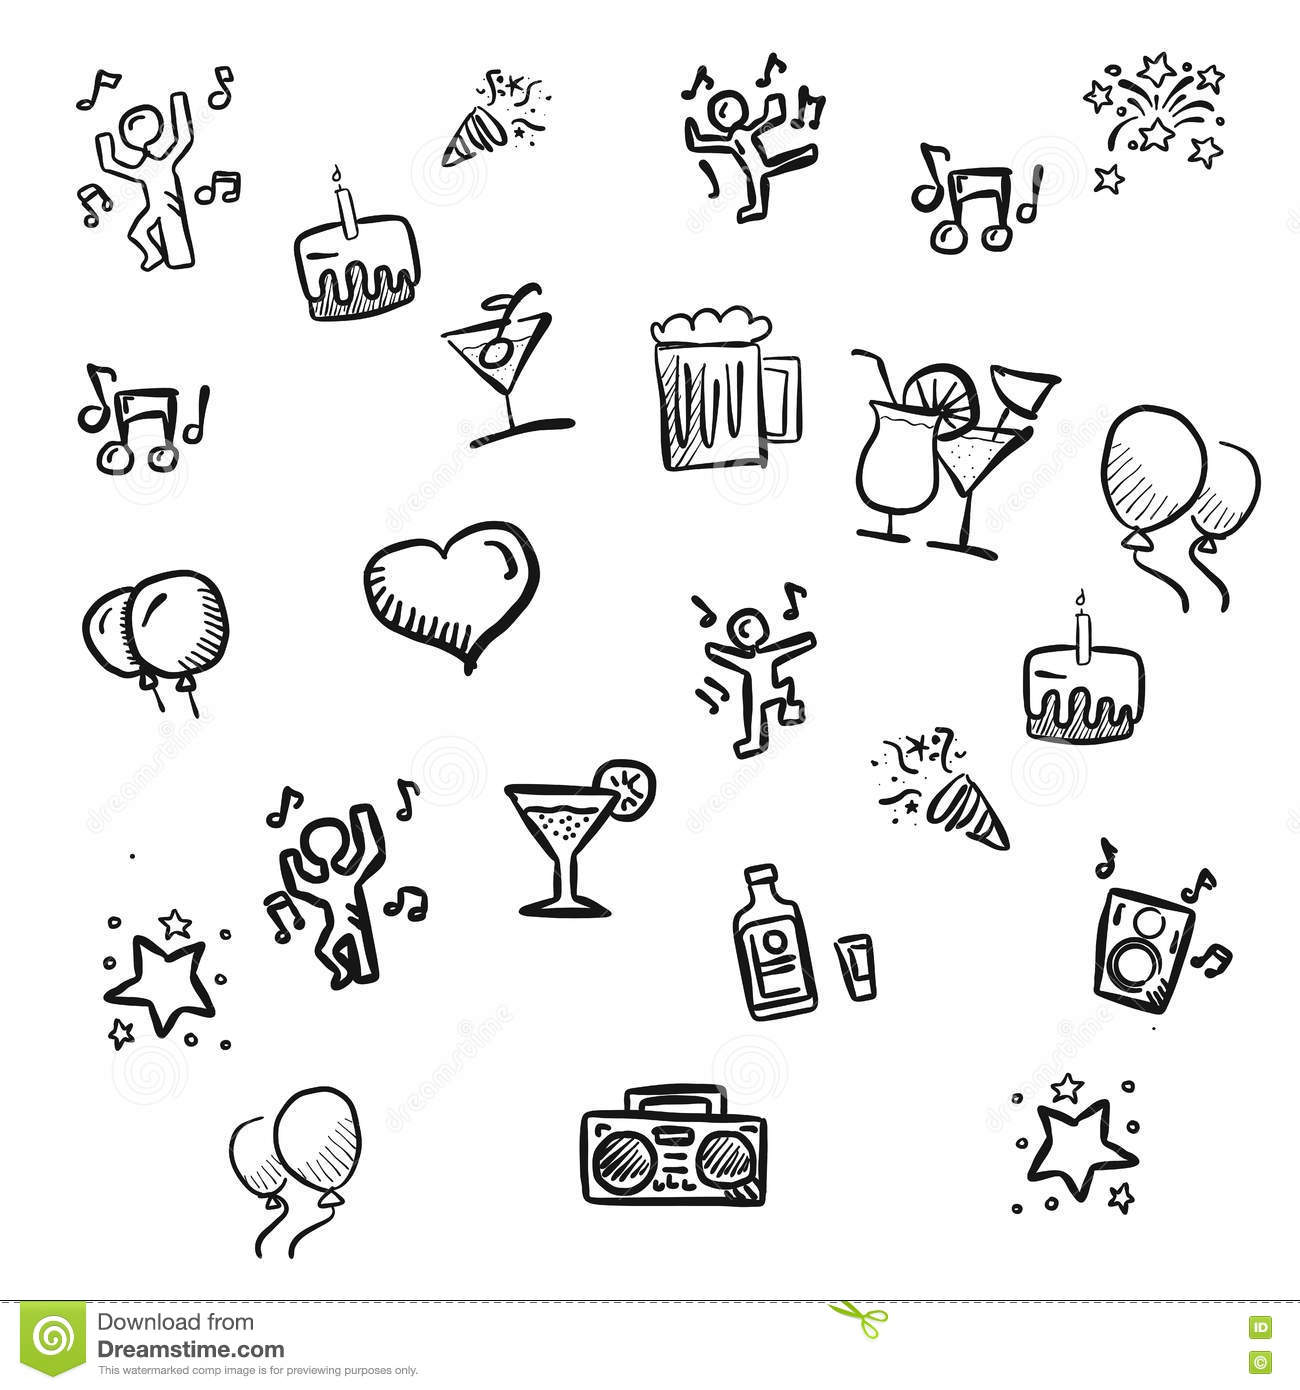 Wwf Logo together with Spider Web  work Diagram also Good Carbs Bad Carbsits Anything But Simple besides Stock Illustration Small Party Doodles Hand Drawn Sketches Vector Artwork Image73315689 further Kleurplaat Kop Eend I17849. on simple beer drawing